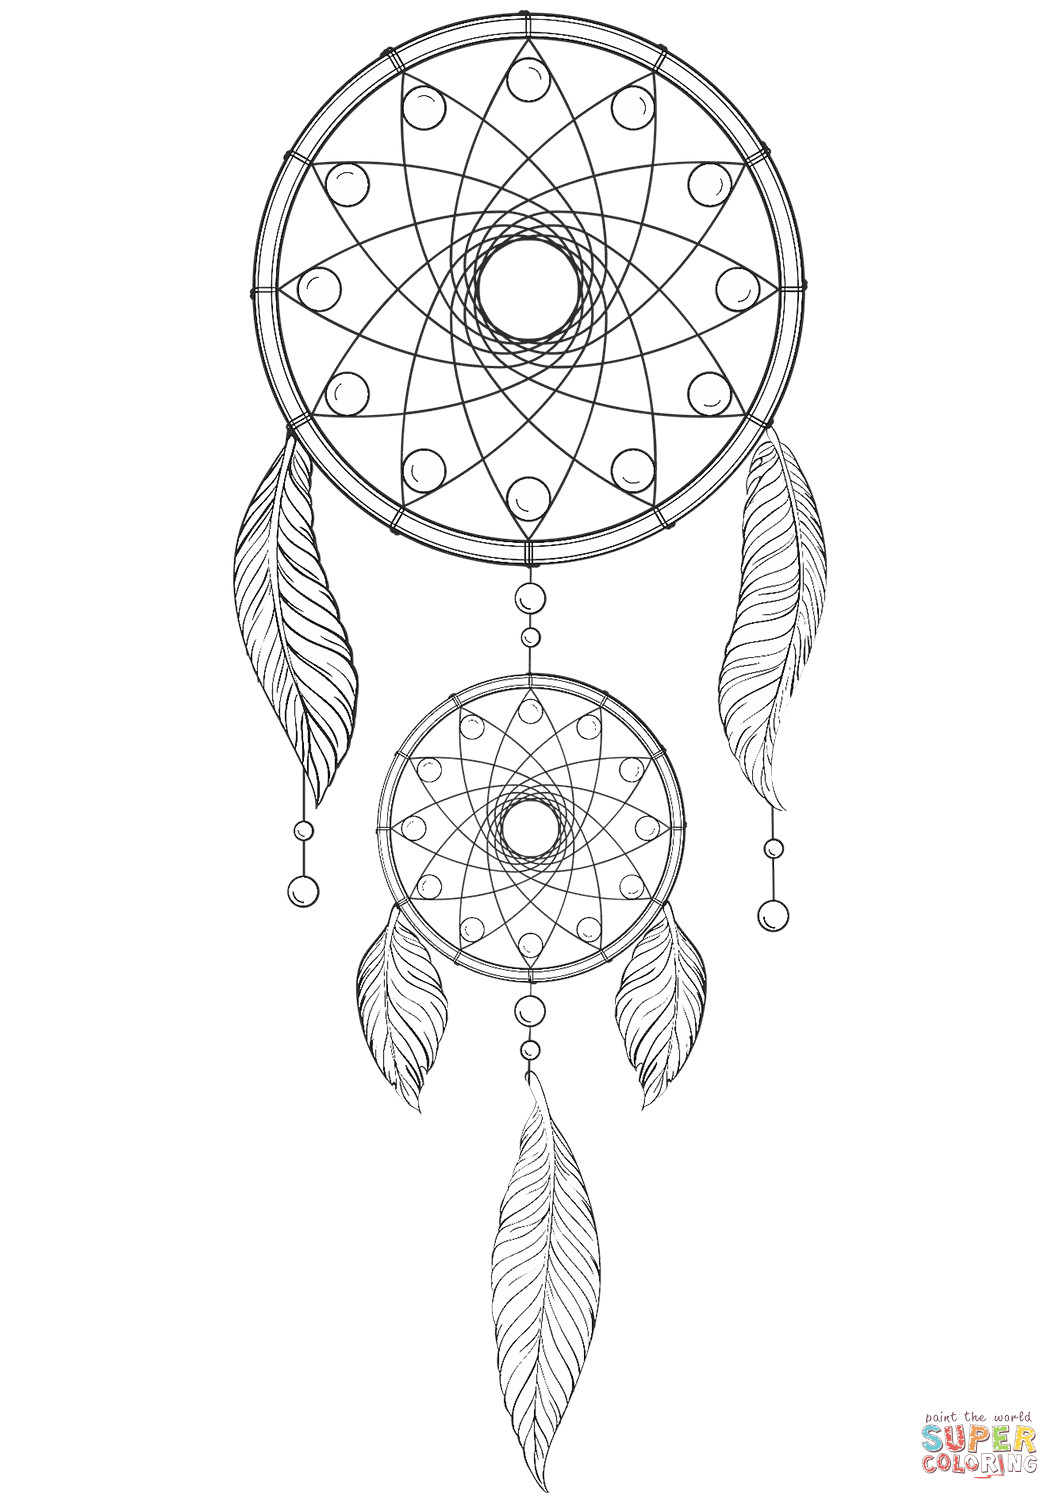 Dreamcatcher Printable Coloring Pages  Dream Catcher coloring page